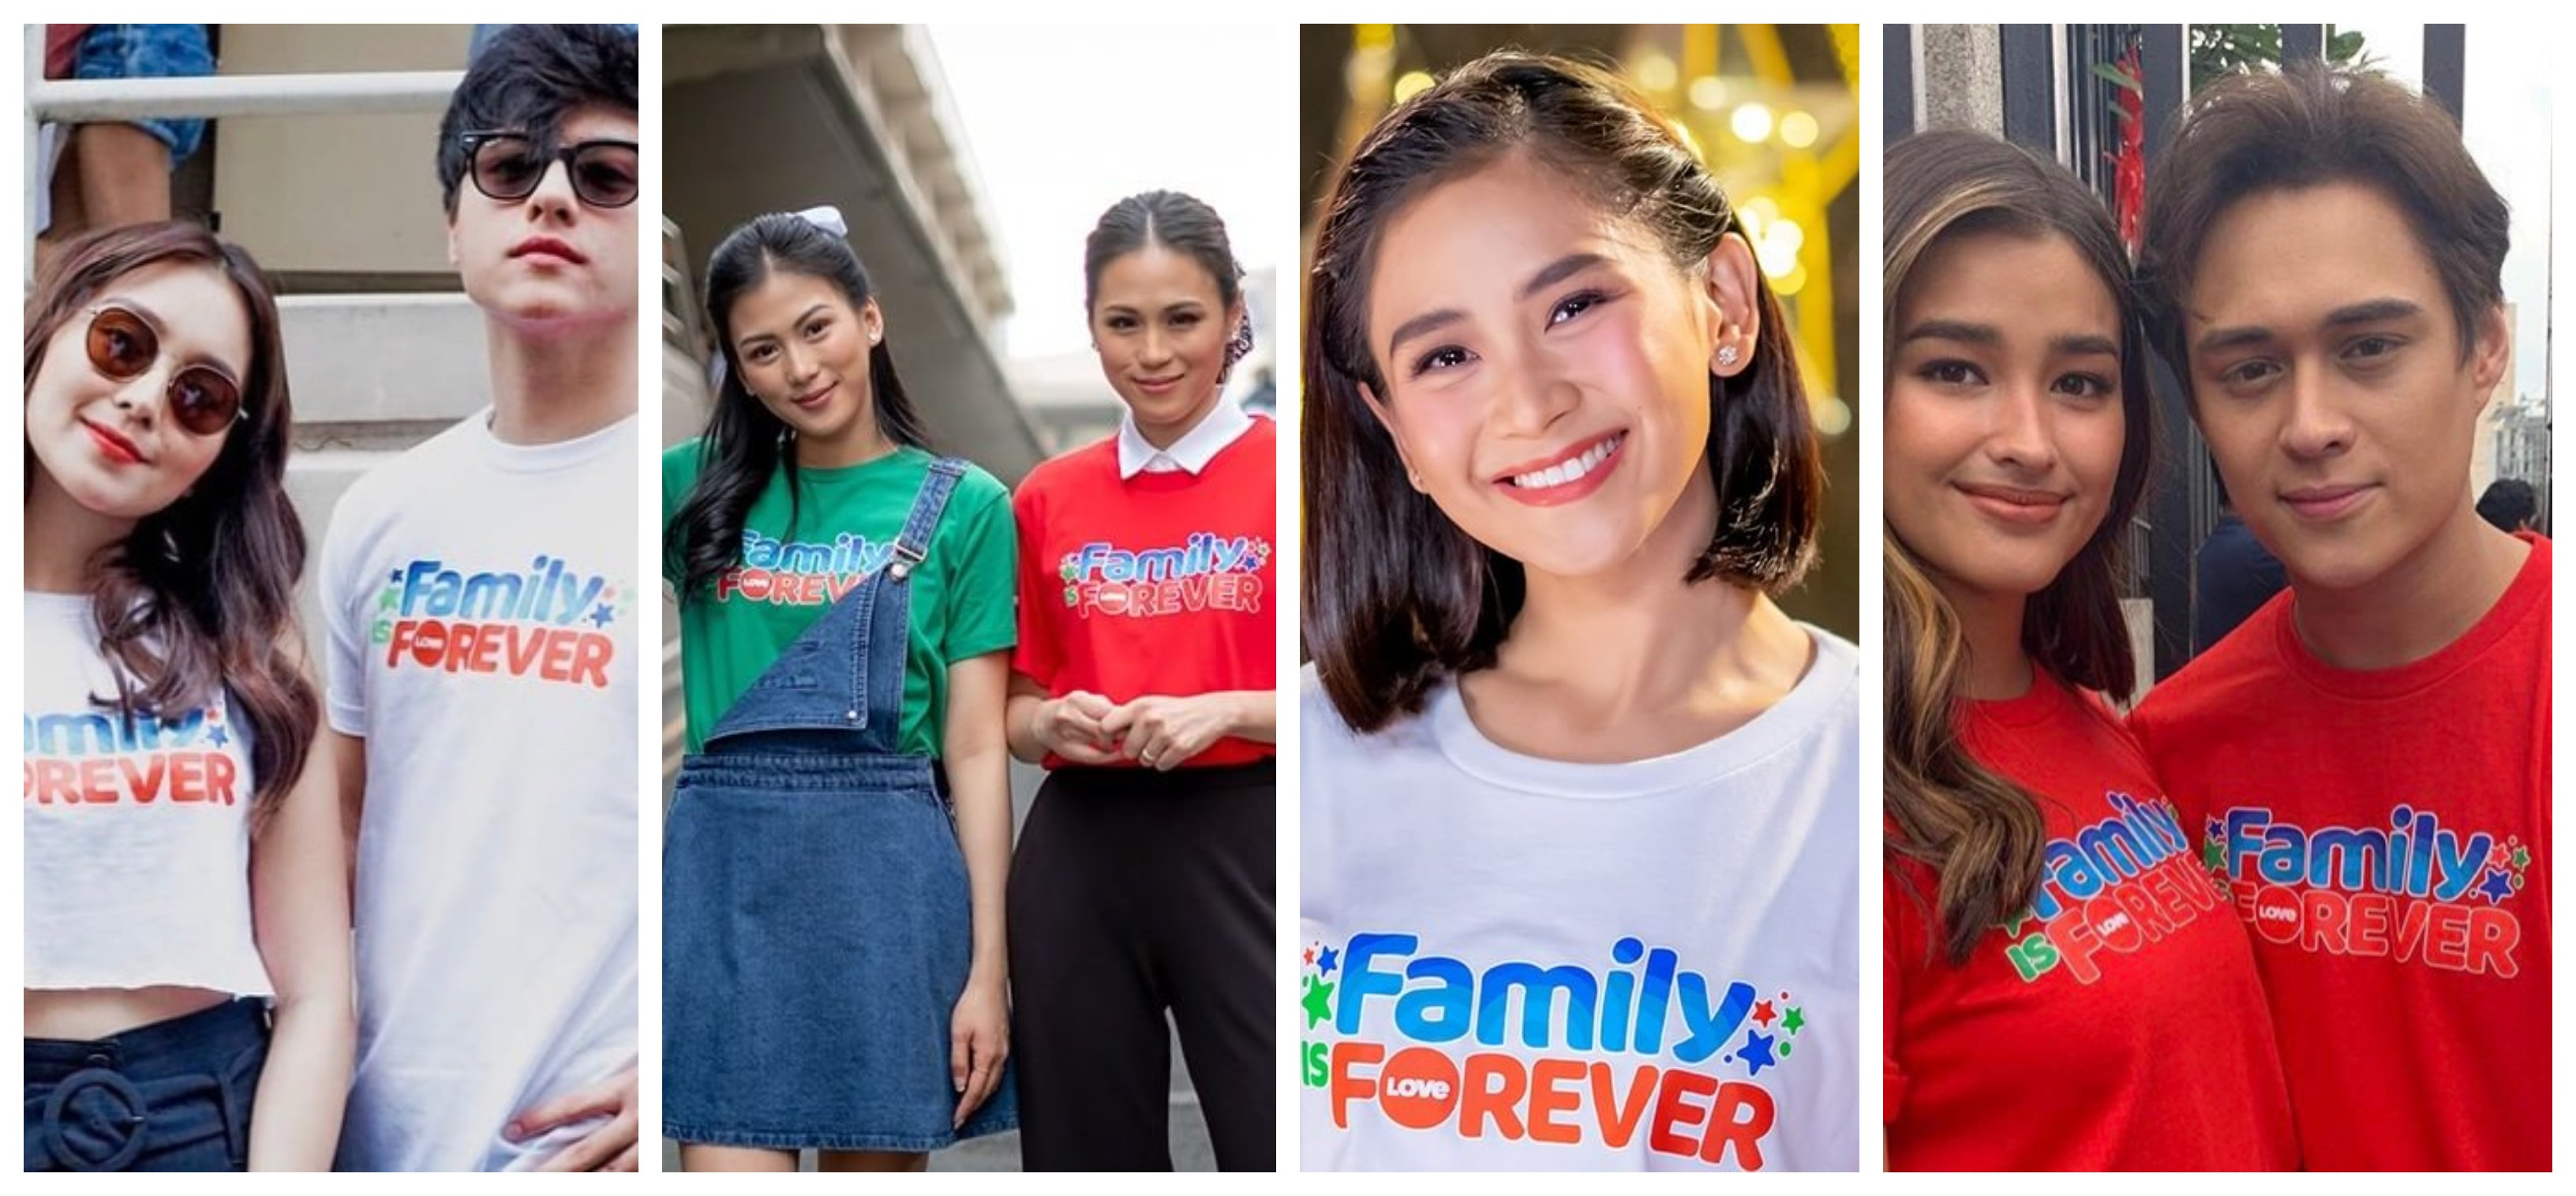 "Wear the love of family at all times with ABS-CBN's ""Family is Forever"" shirts"